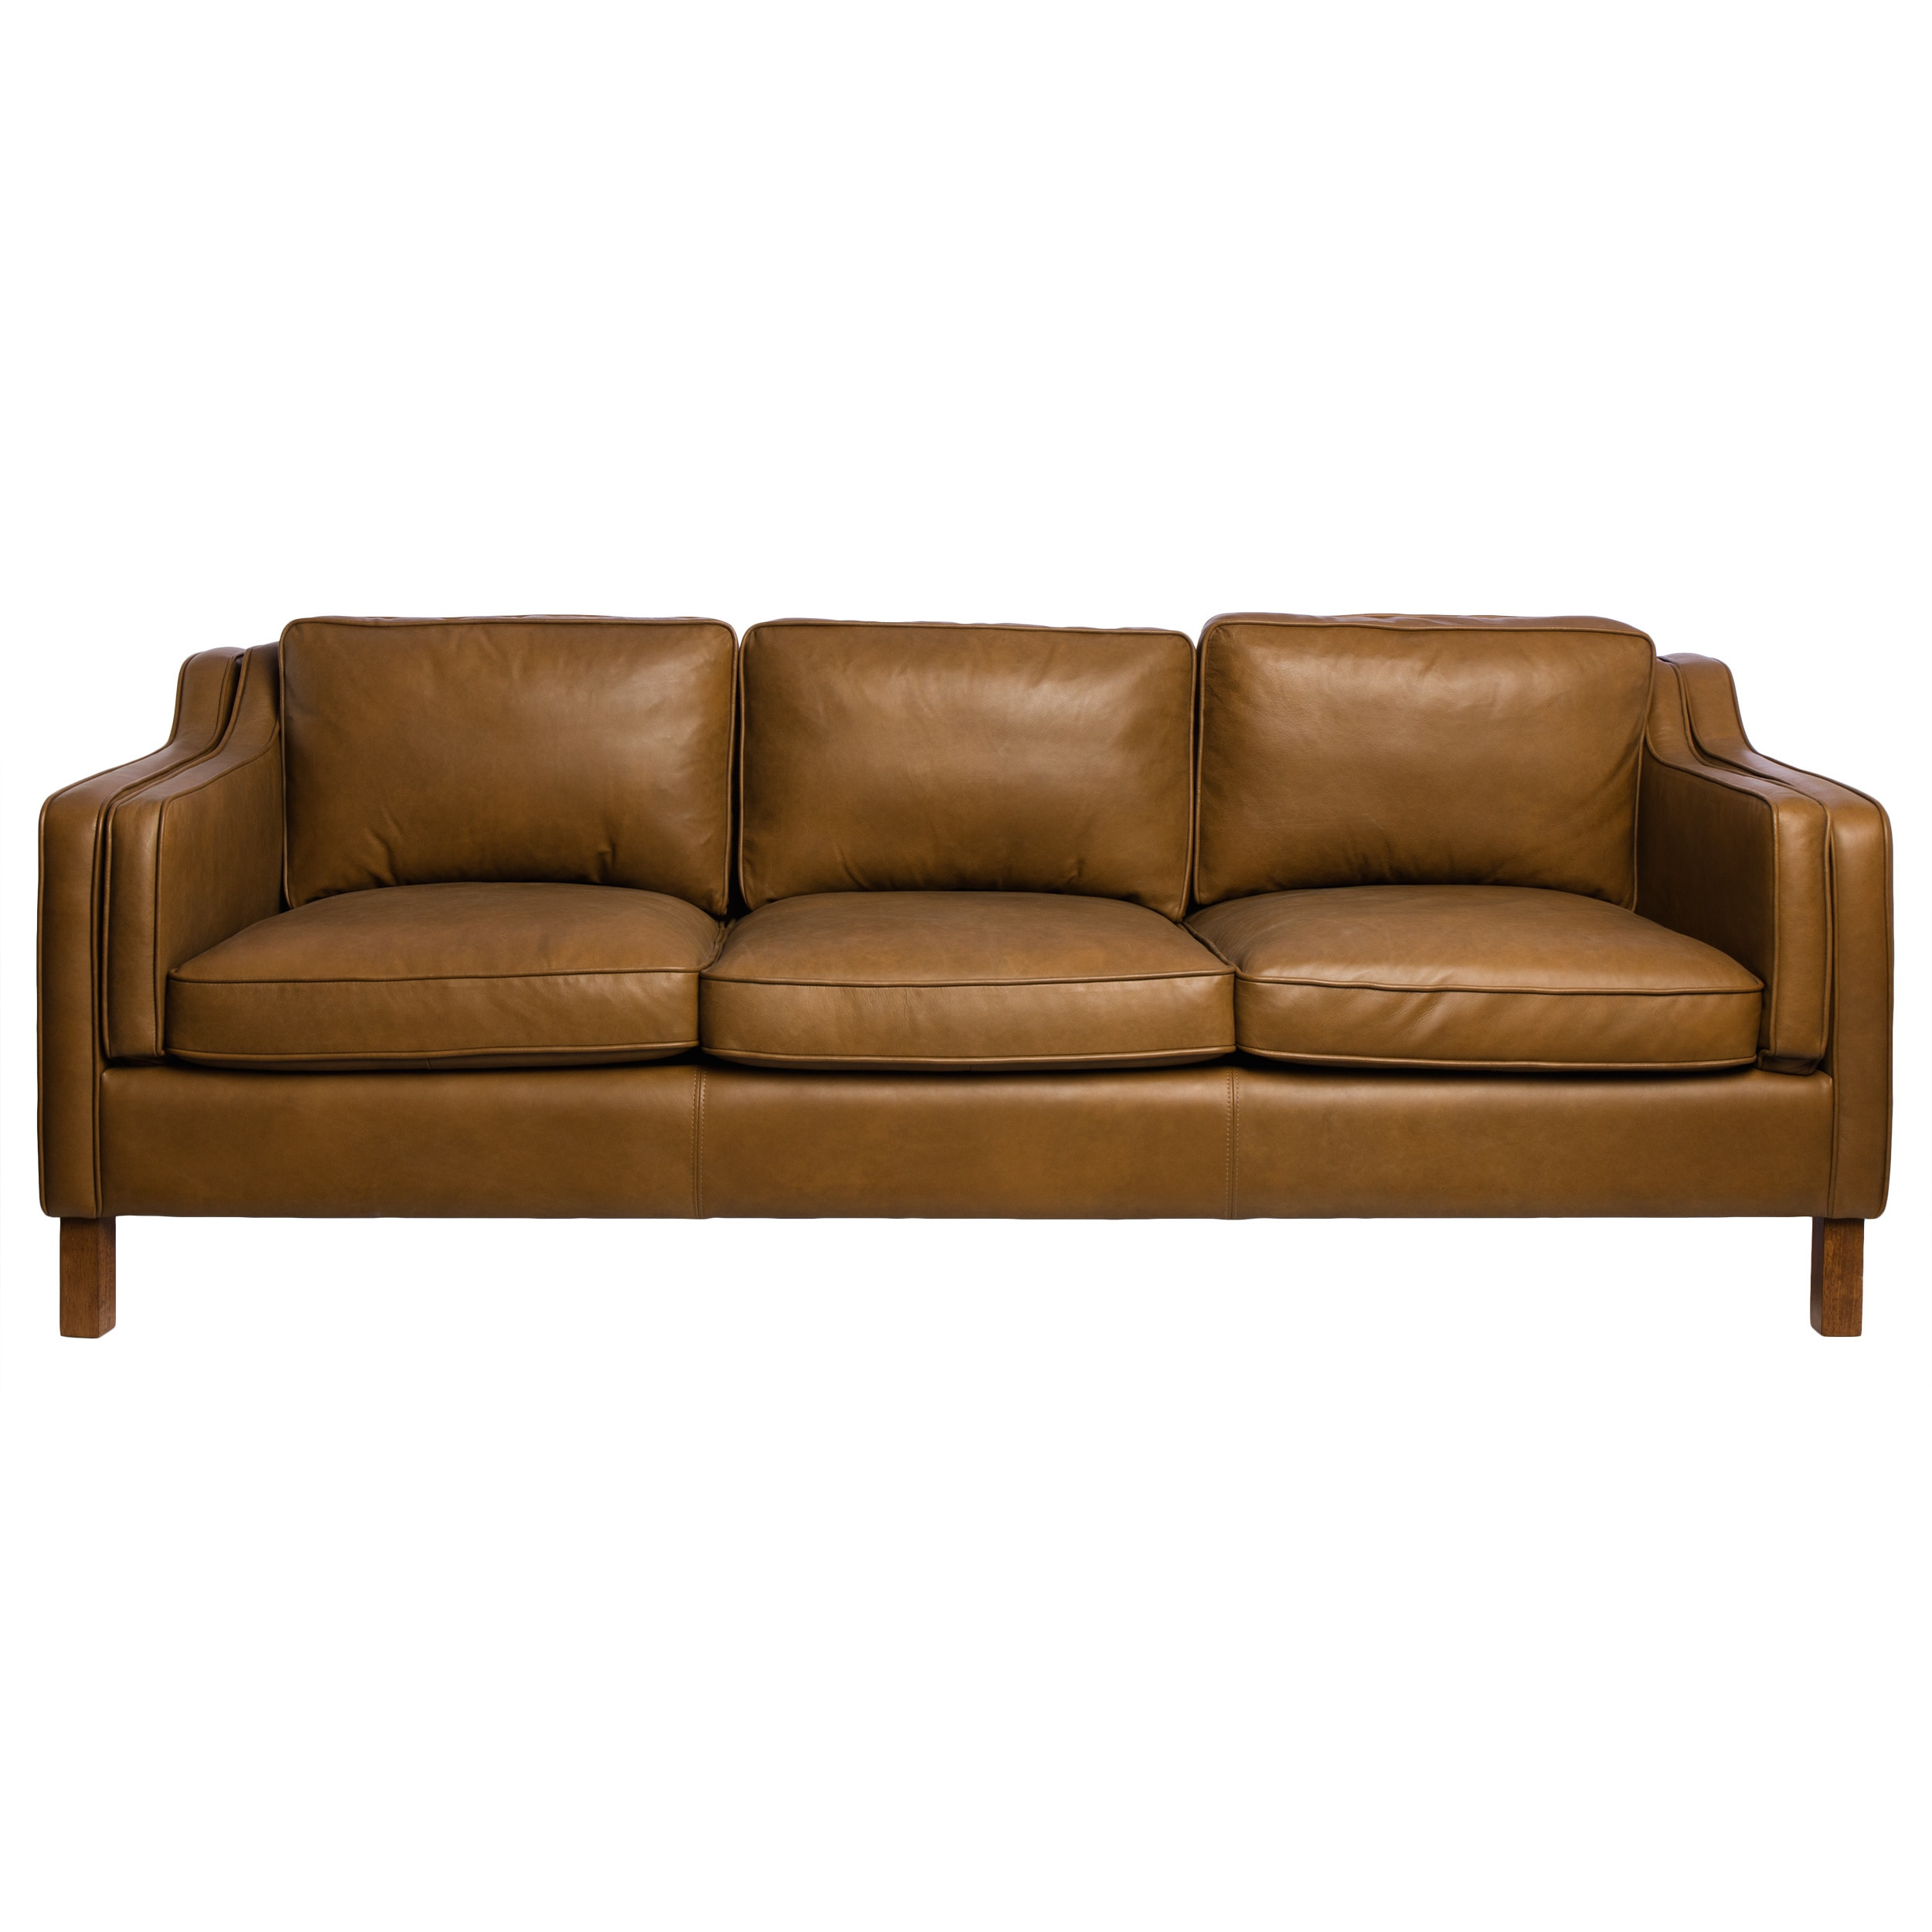 Jasper Laine Canape 86 Inch Oxford Honey Leather Sofa Free Shipping Today 8840197